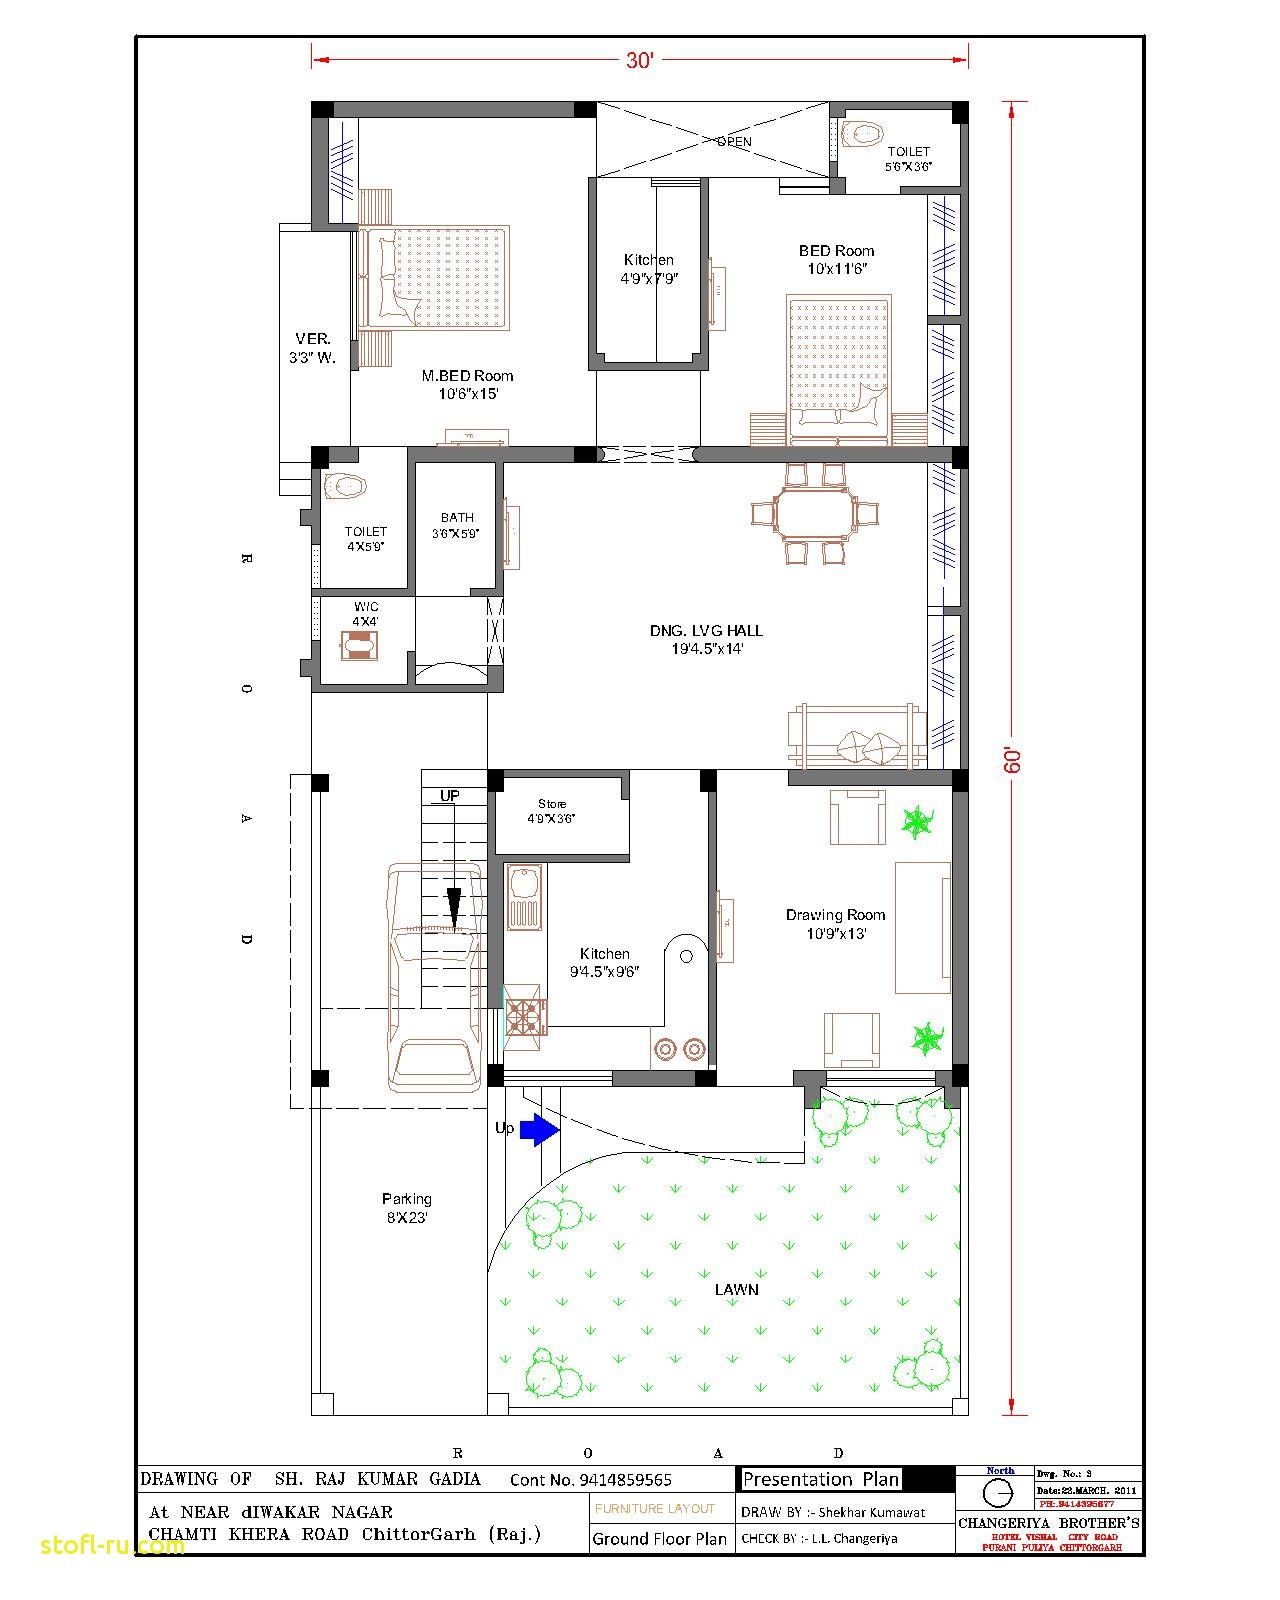 Indian Home Map Design Design Keralahomedesign Housedesign Indianhousefrontelevationdesigns I Home Design Floor Plans Indian House Plans House Floor Plans